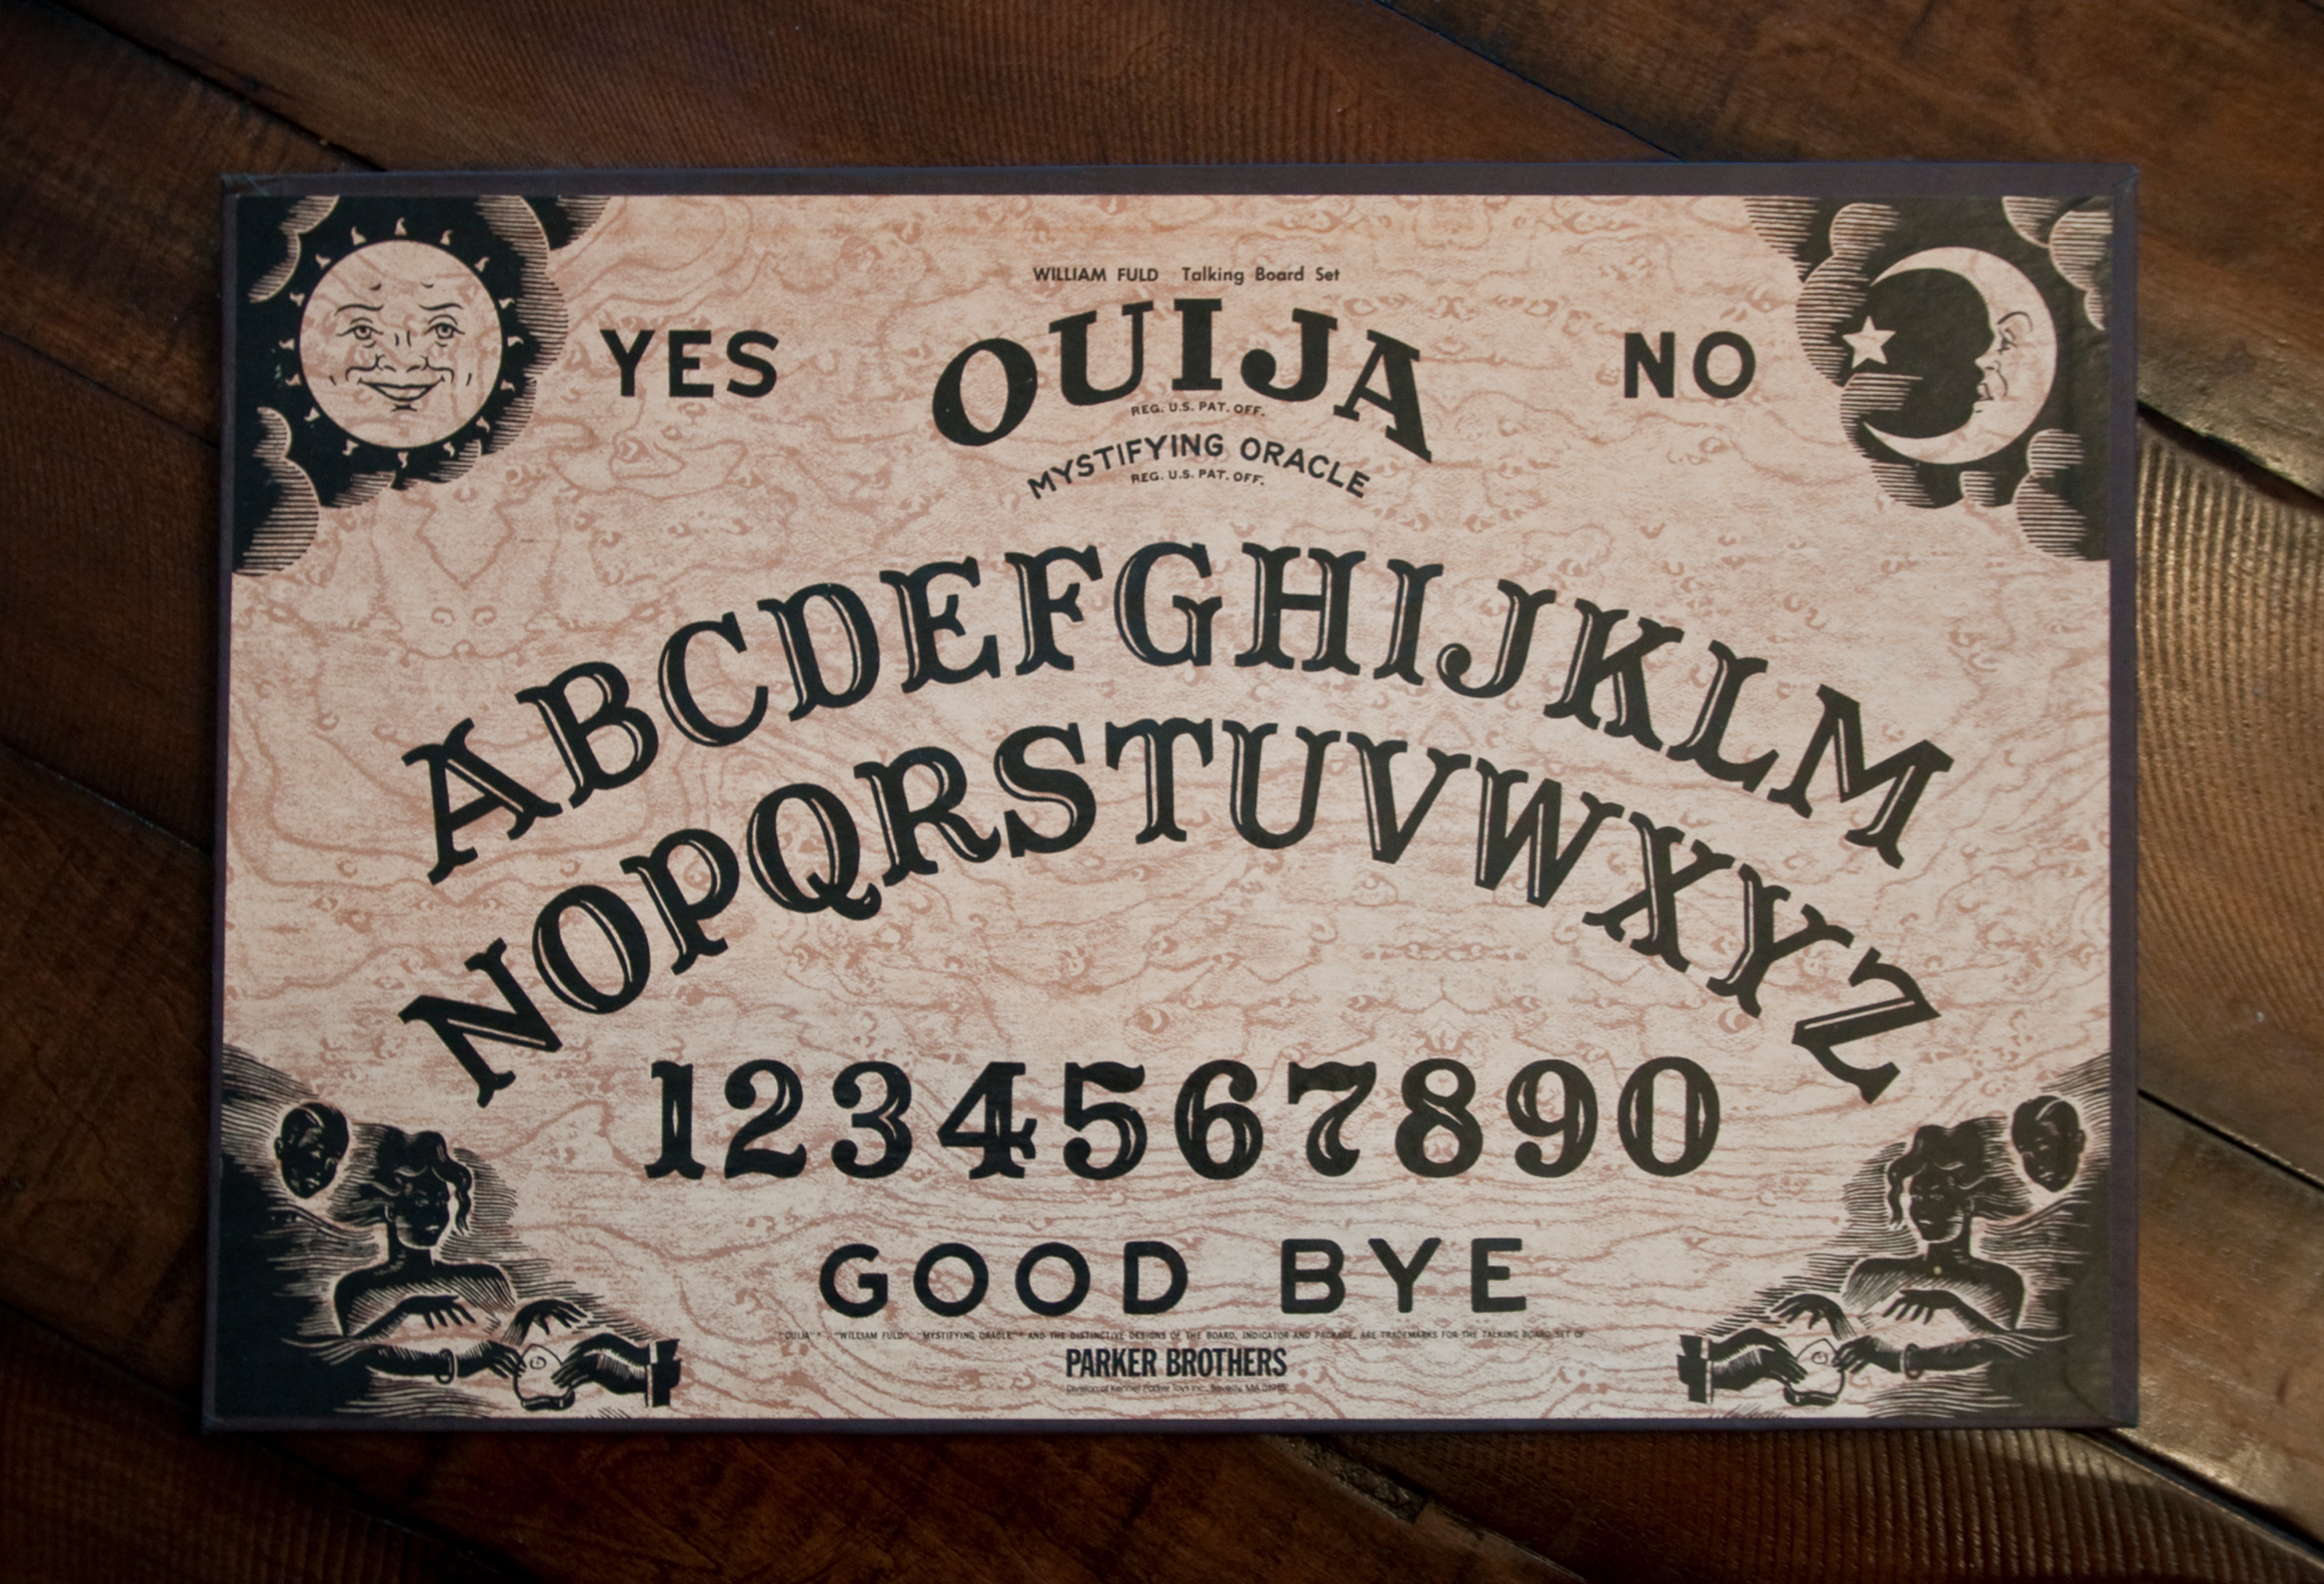 Ouija Board on a Table